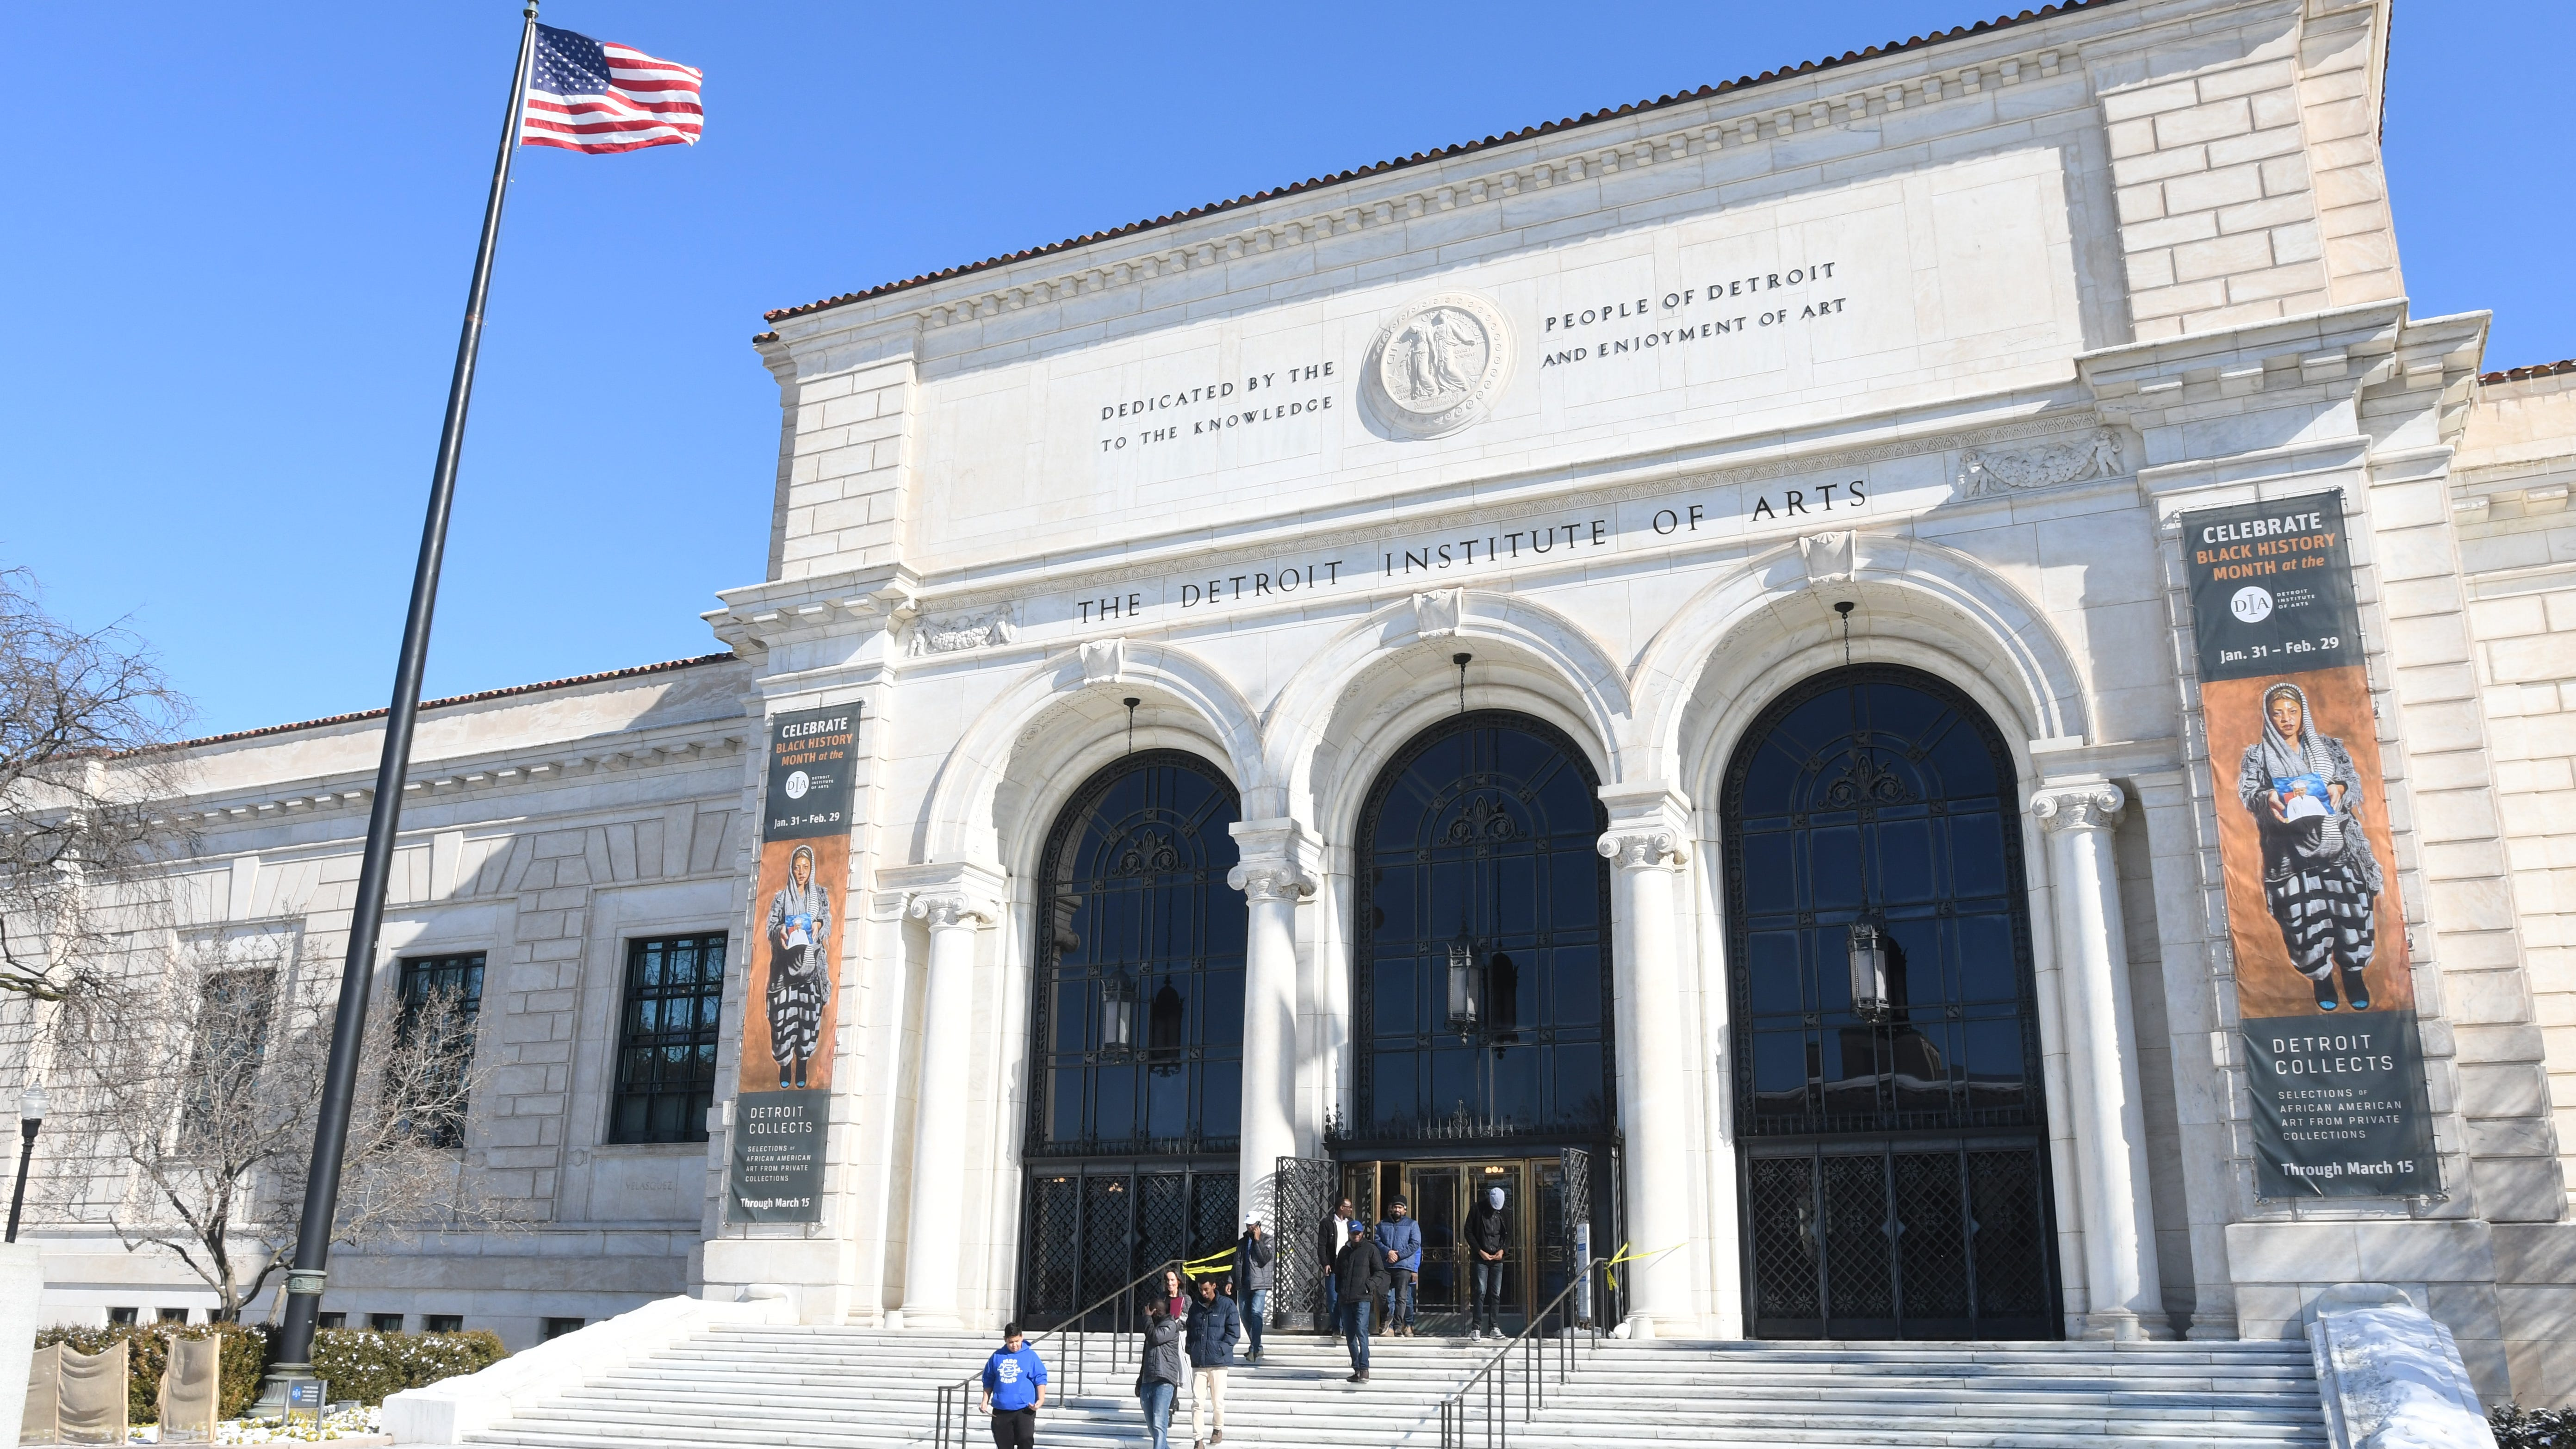 Detroit's Cultural Center to get free outdoor Wi-Fi